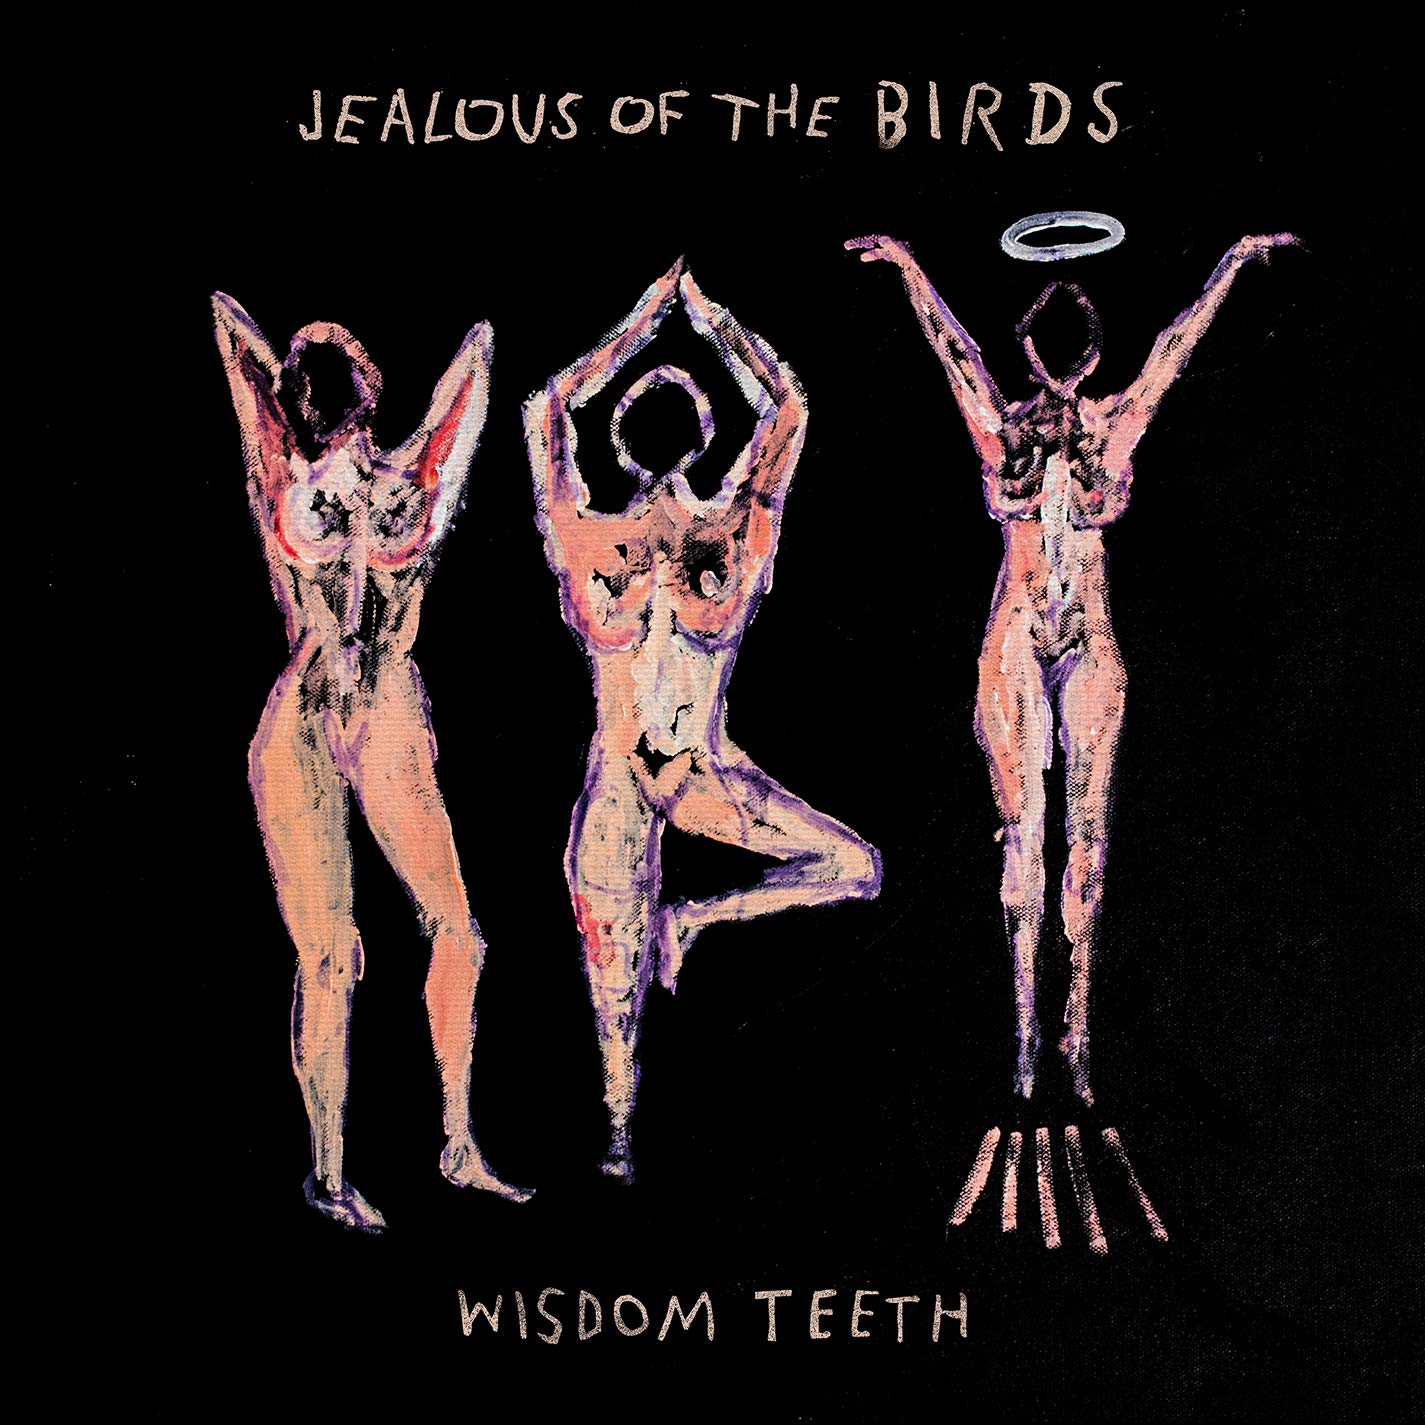 Vinilo : Jealous of the Birds - Wisdom Teeth (LP Vinyl)